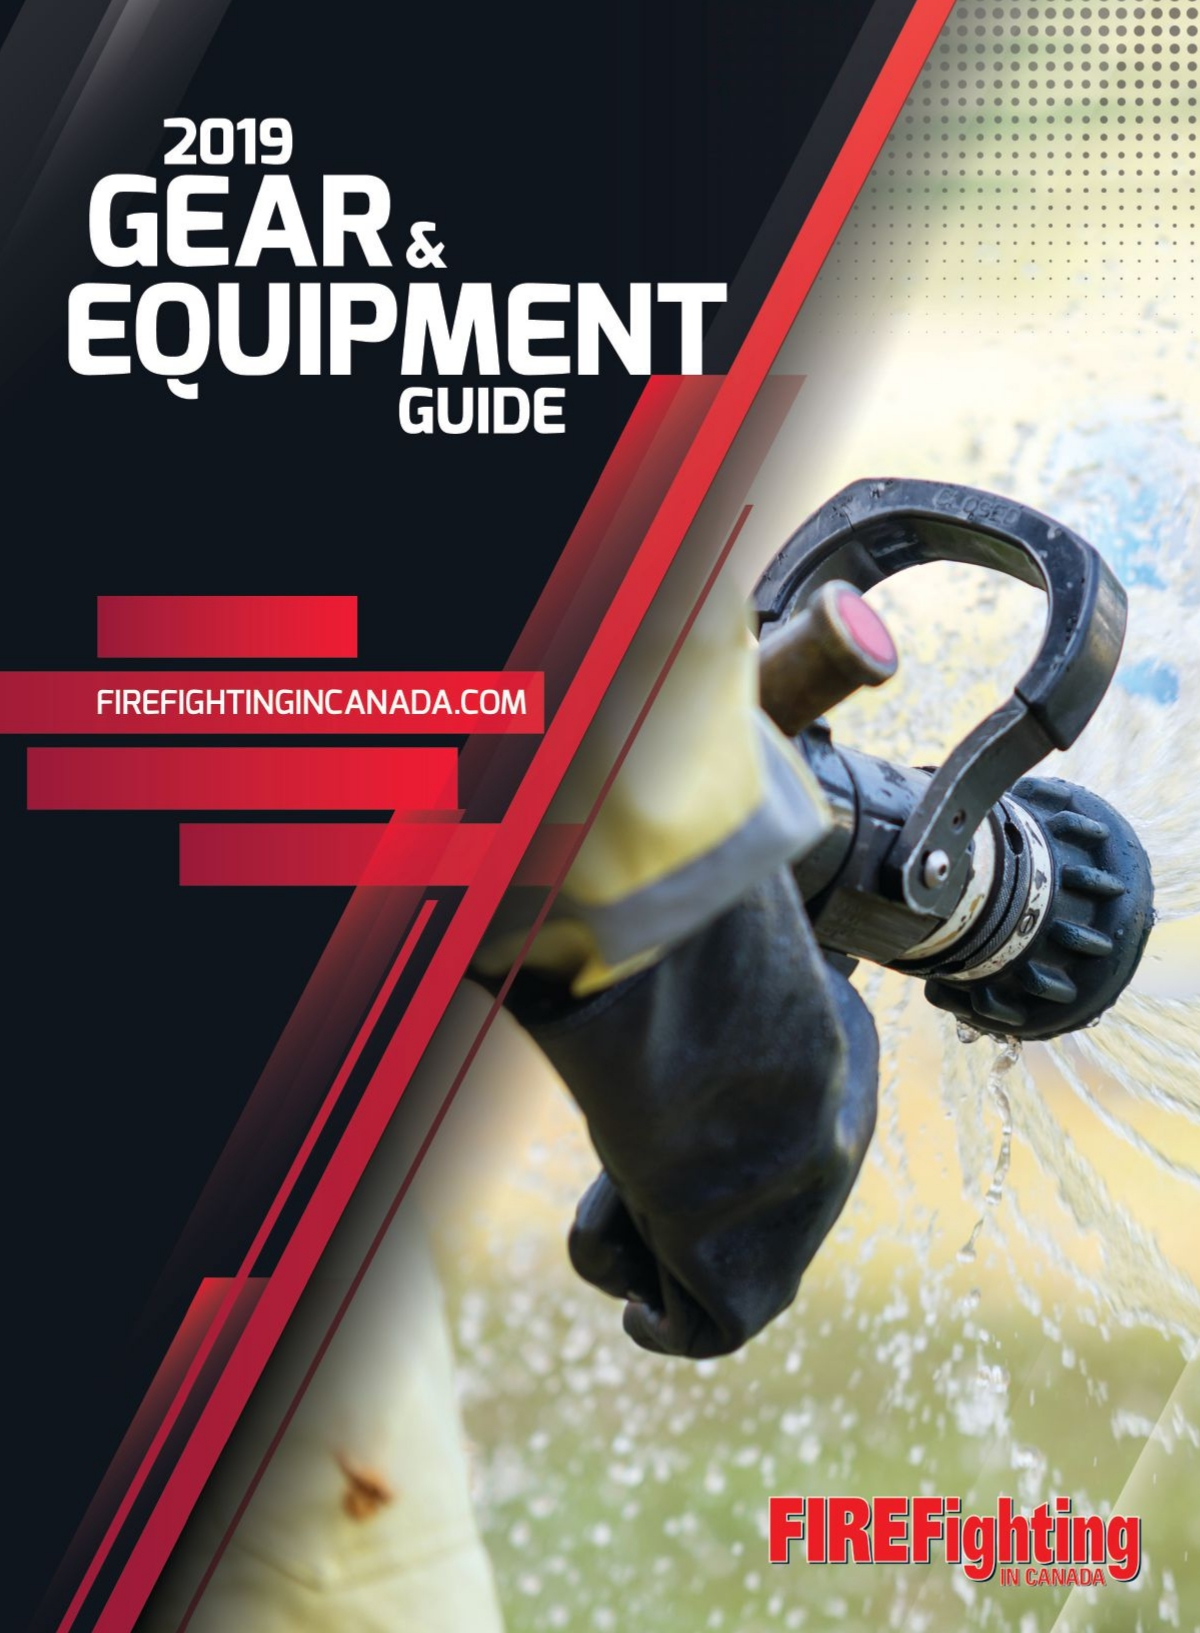 Gear and Equipment Guide 2019